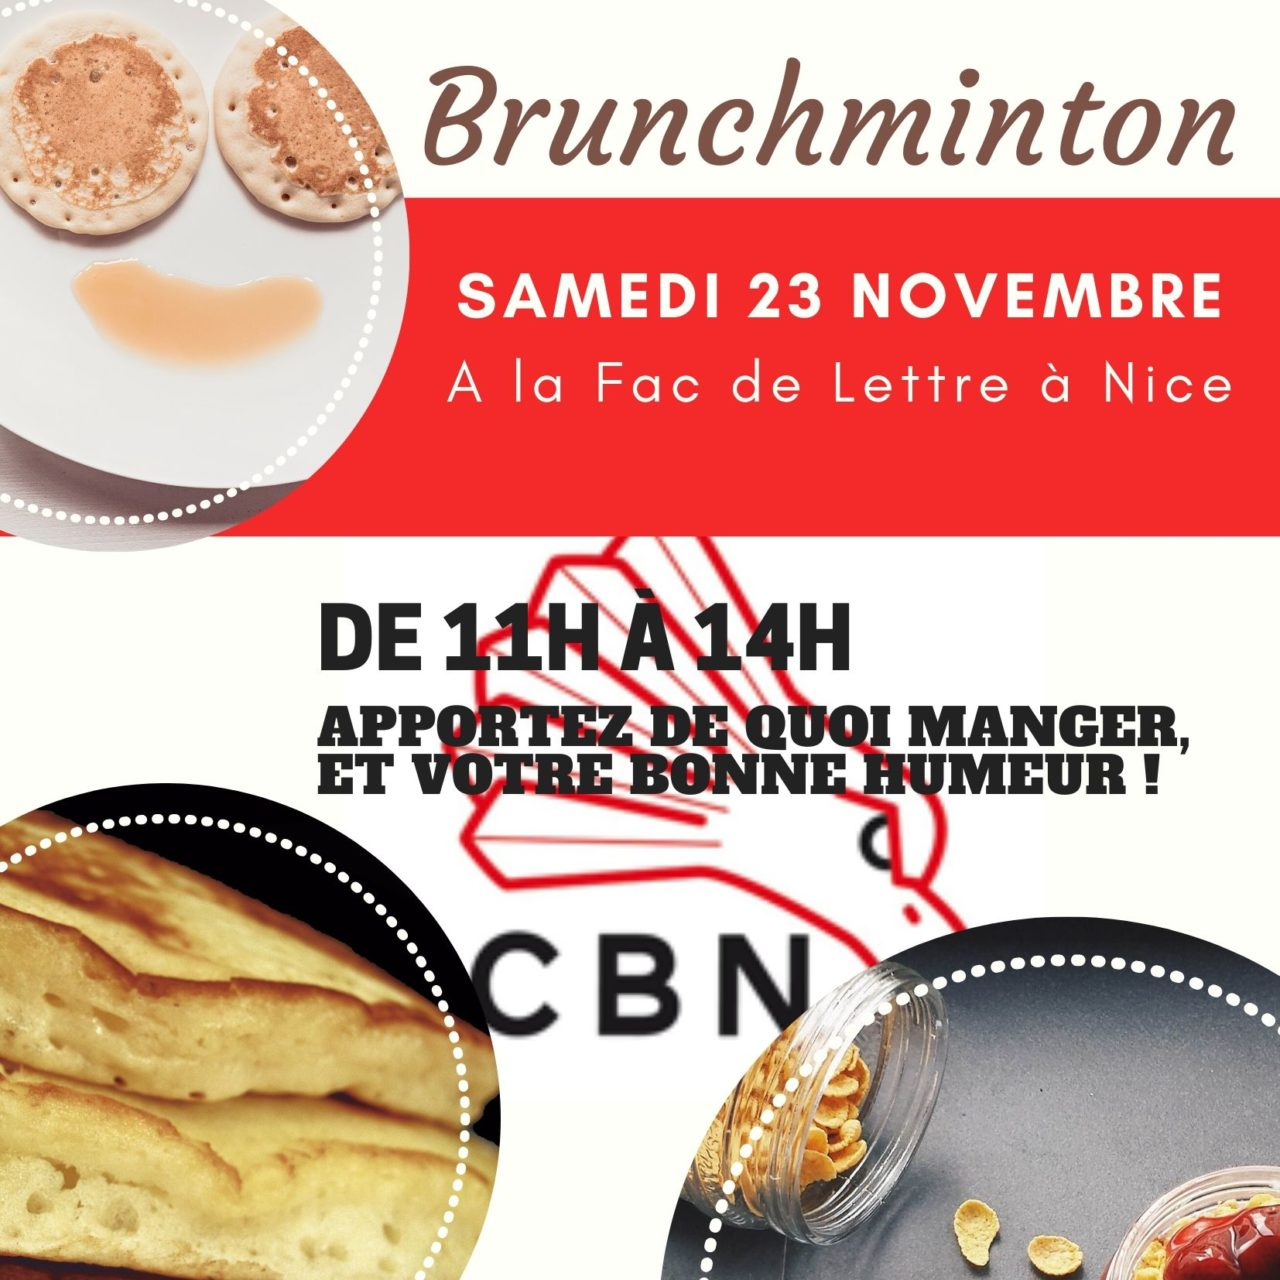 https://www.clubbadmintonnice.org/wp-content/uploads/2019/11/2019-11-20-Brunchminton-1280x1280.jpg